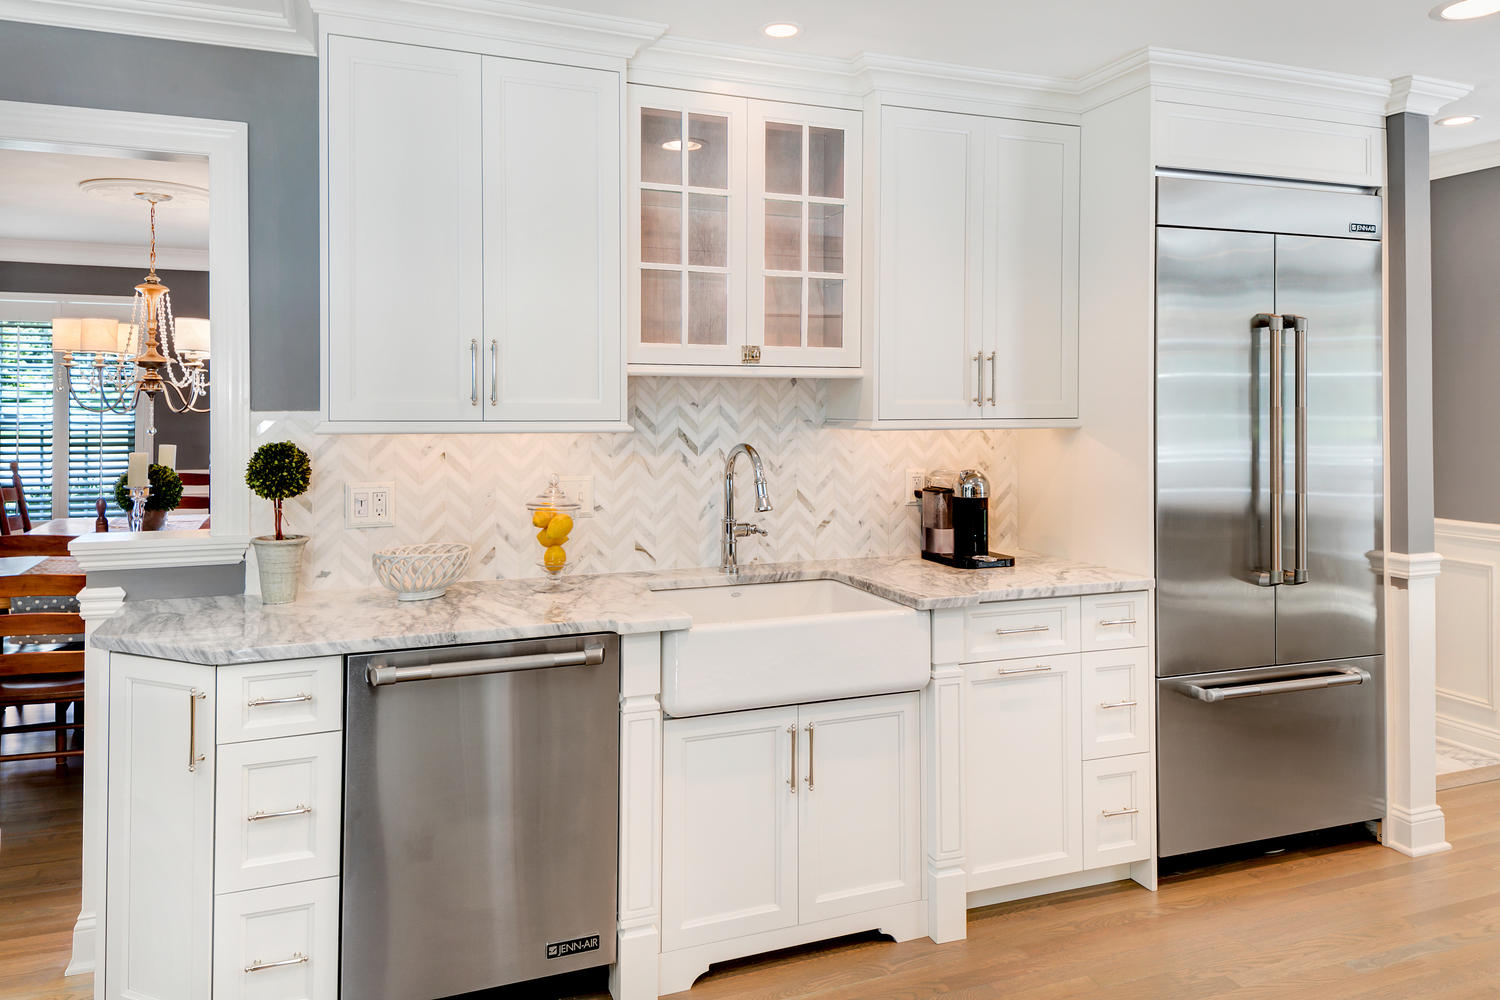 Stainless Appliance And White Cabinets